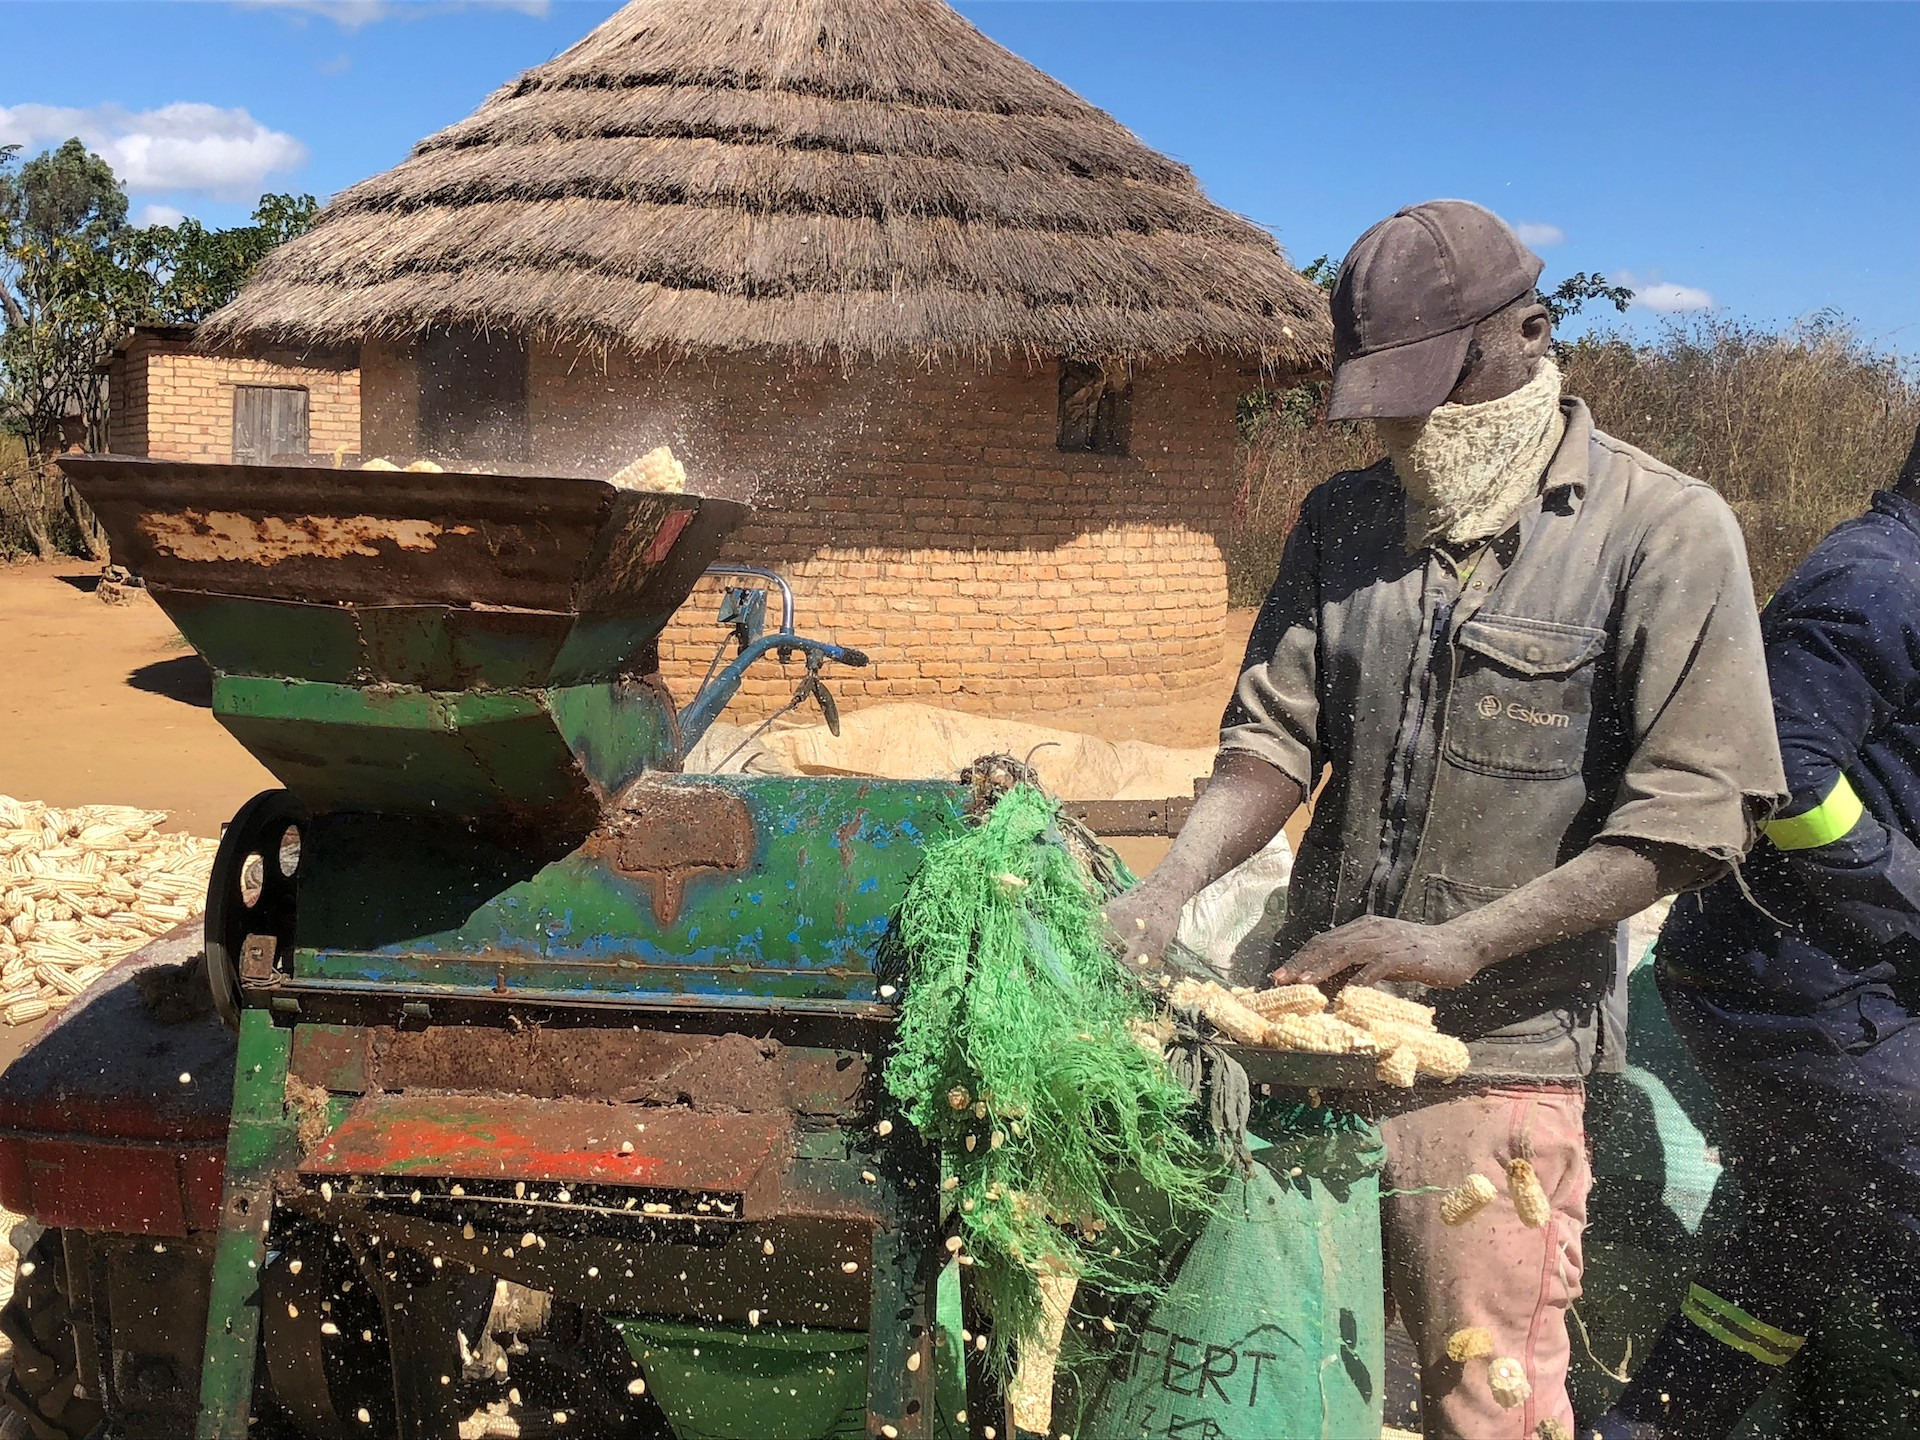 Masimba Mawire collects bare maize cobs after removing the grain using a mechanized maize sheller in Zimbabwe. (Photo: Matthew O'Leary/CIMMYT)